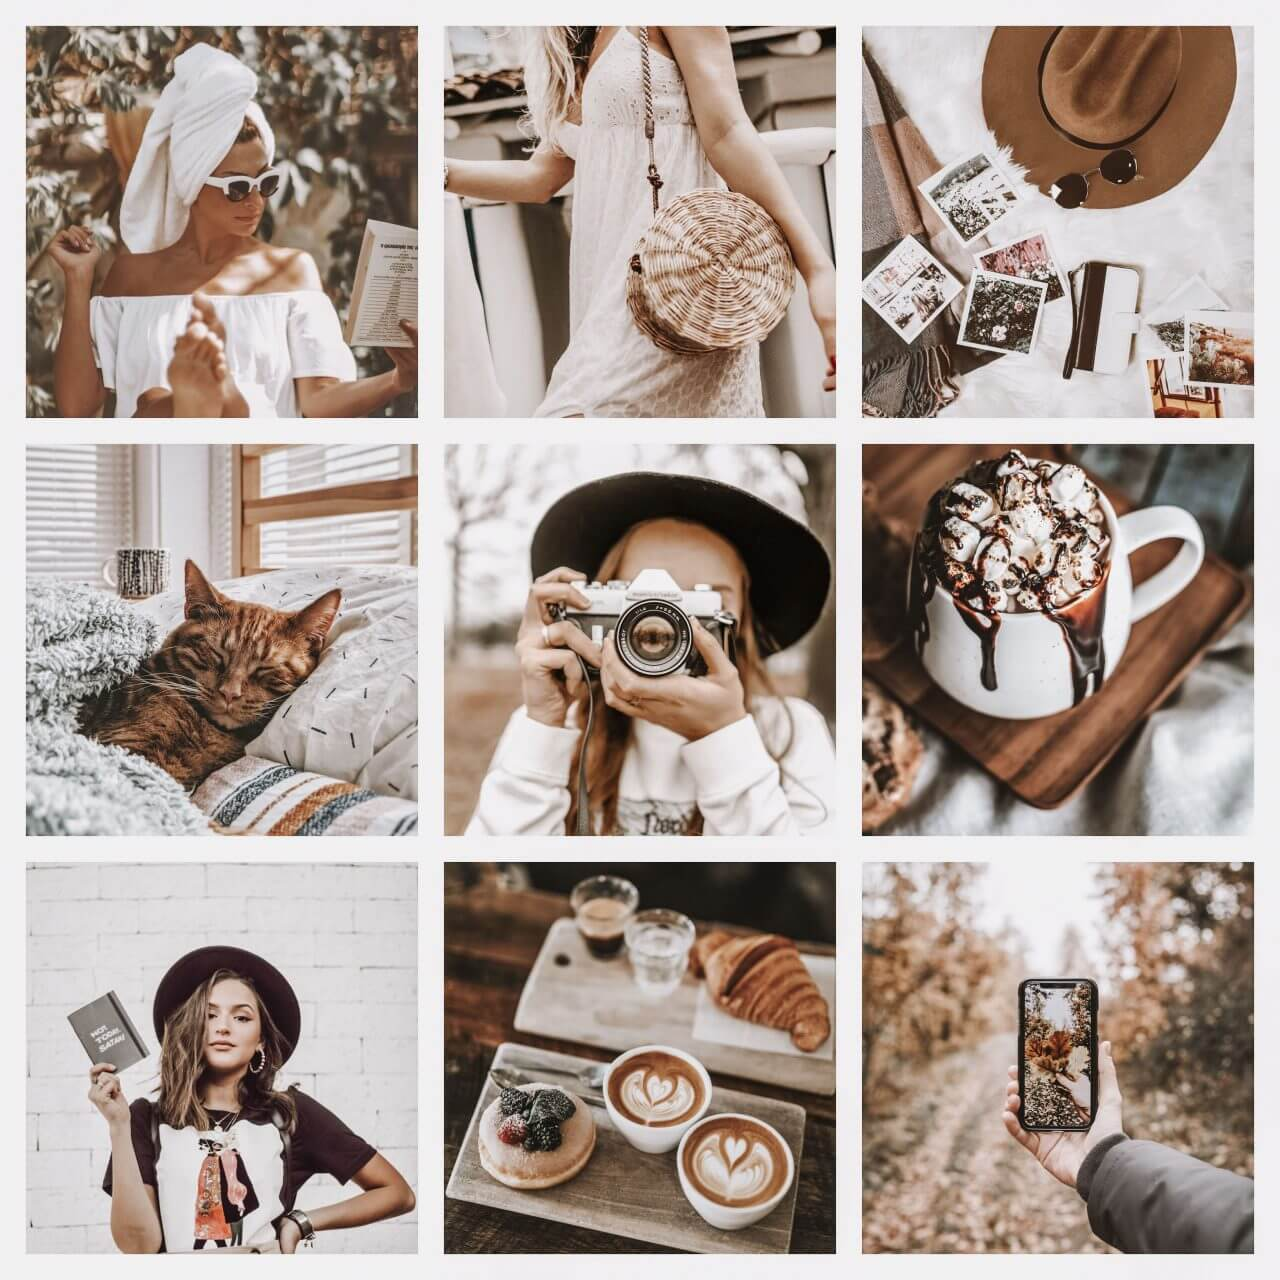 Cappuccino moodboard preset filters Pixgrade for mobile and desktop